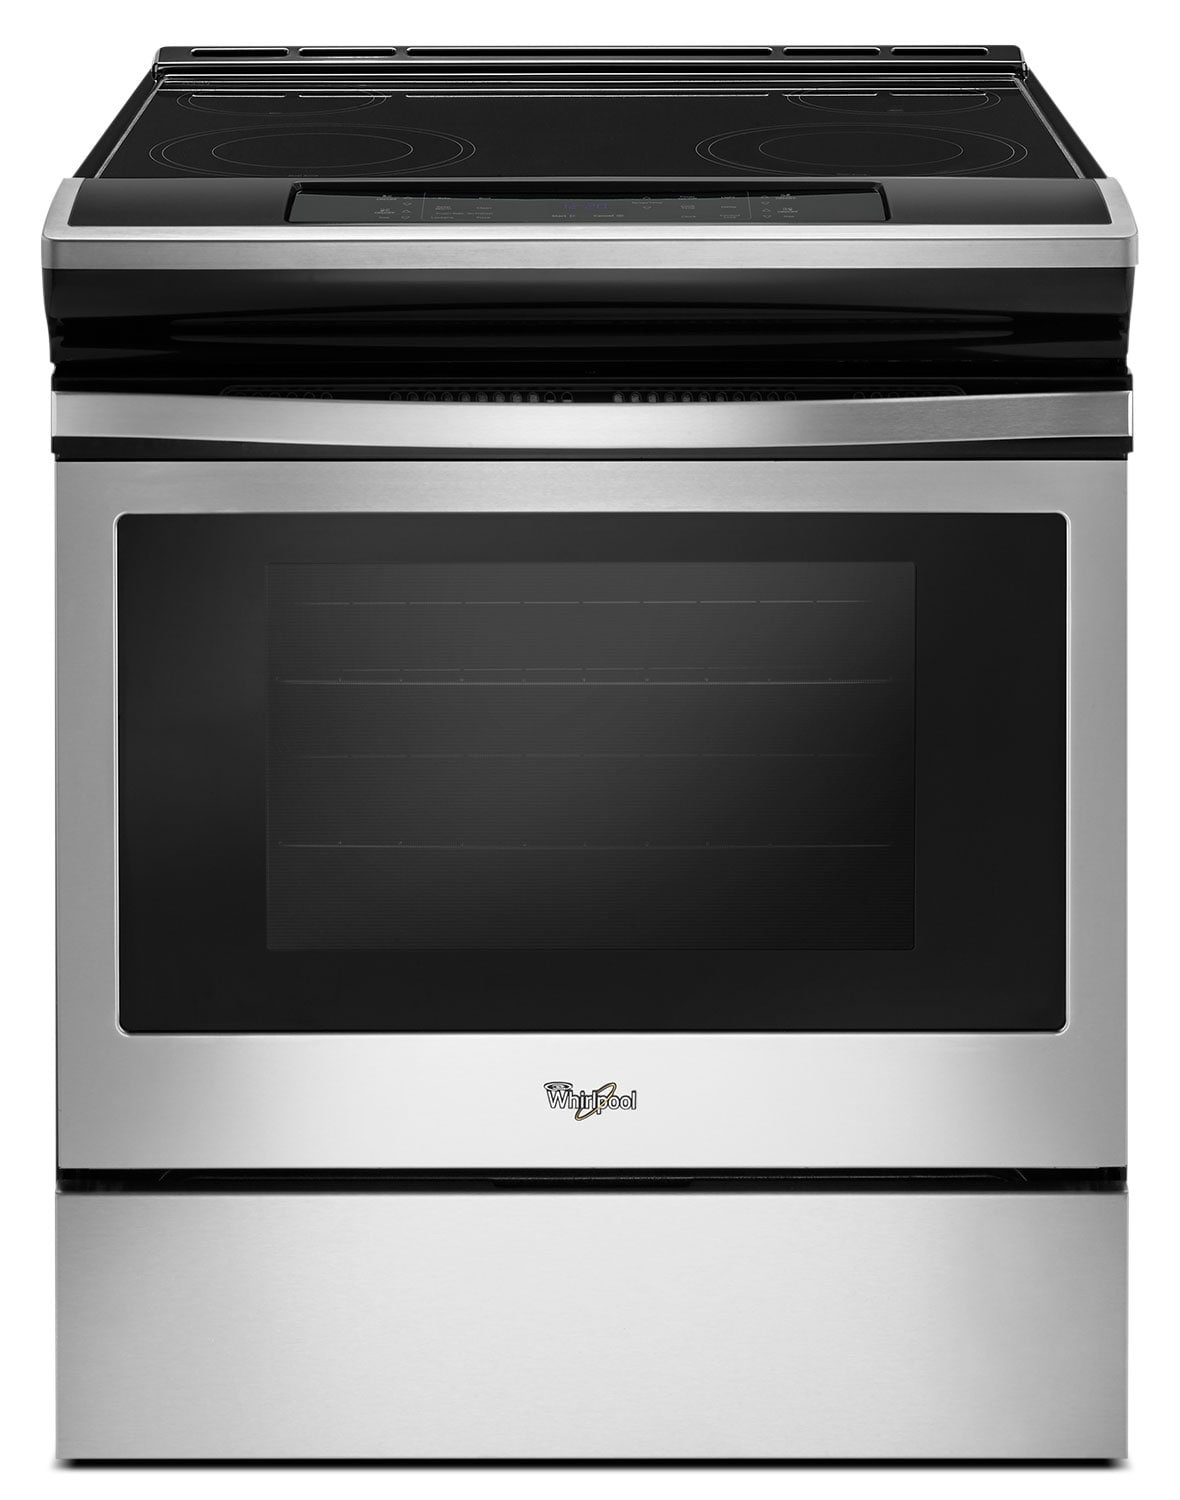 Cooking Products - Whirlpool Stainless Steel Slide-In Electric Range (4.8 Cu. Ft.) - YWEE510S0FS